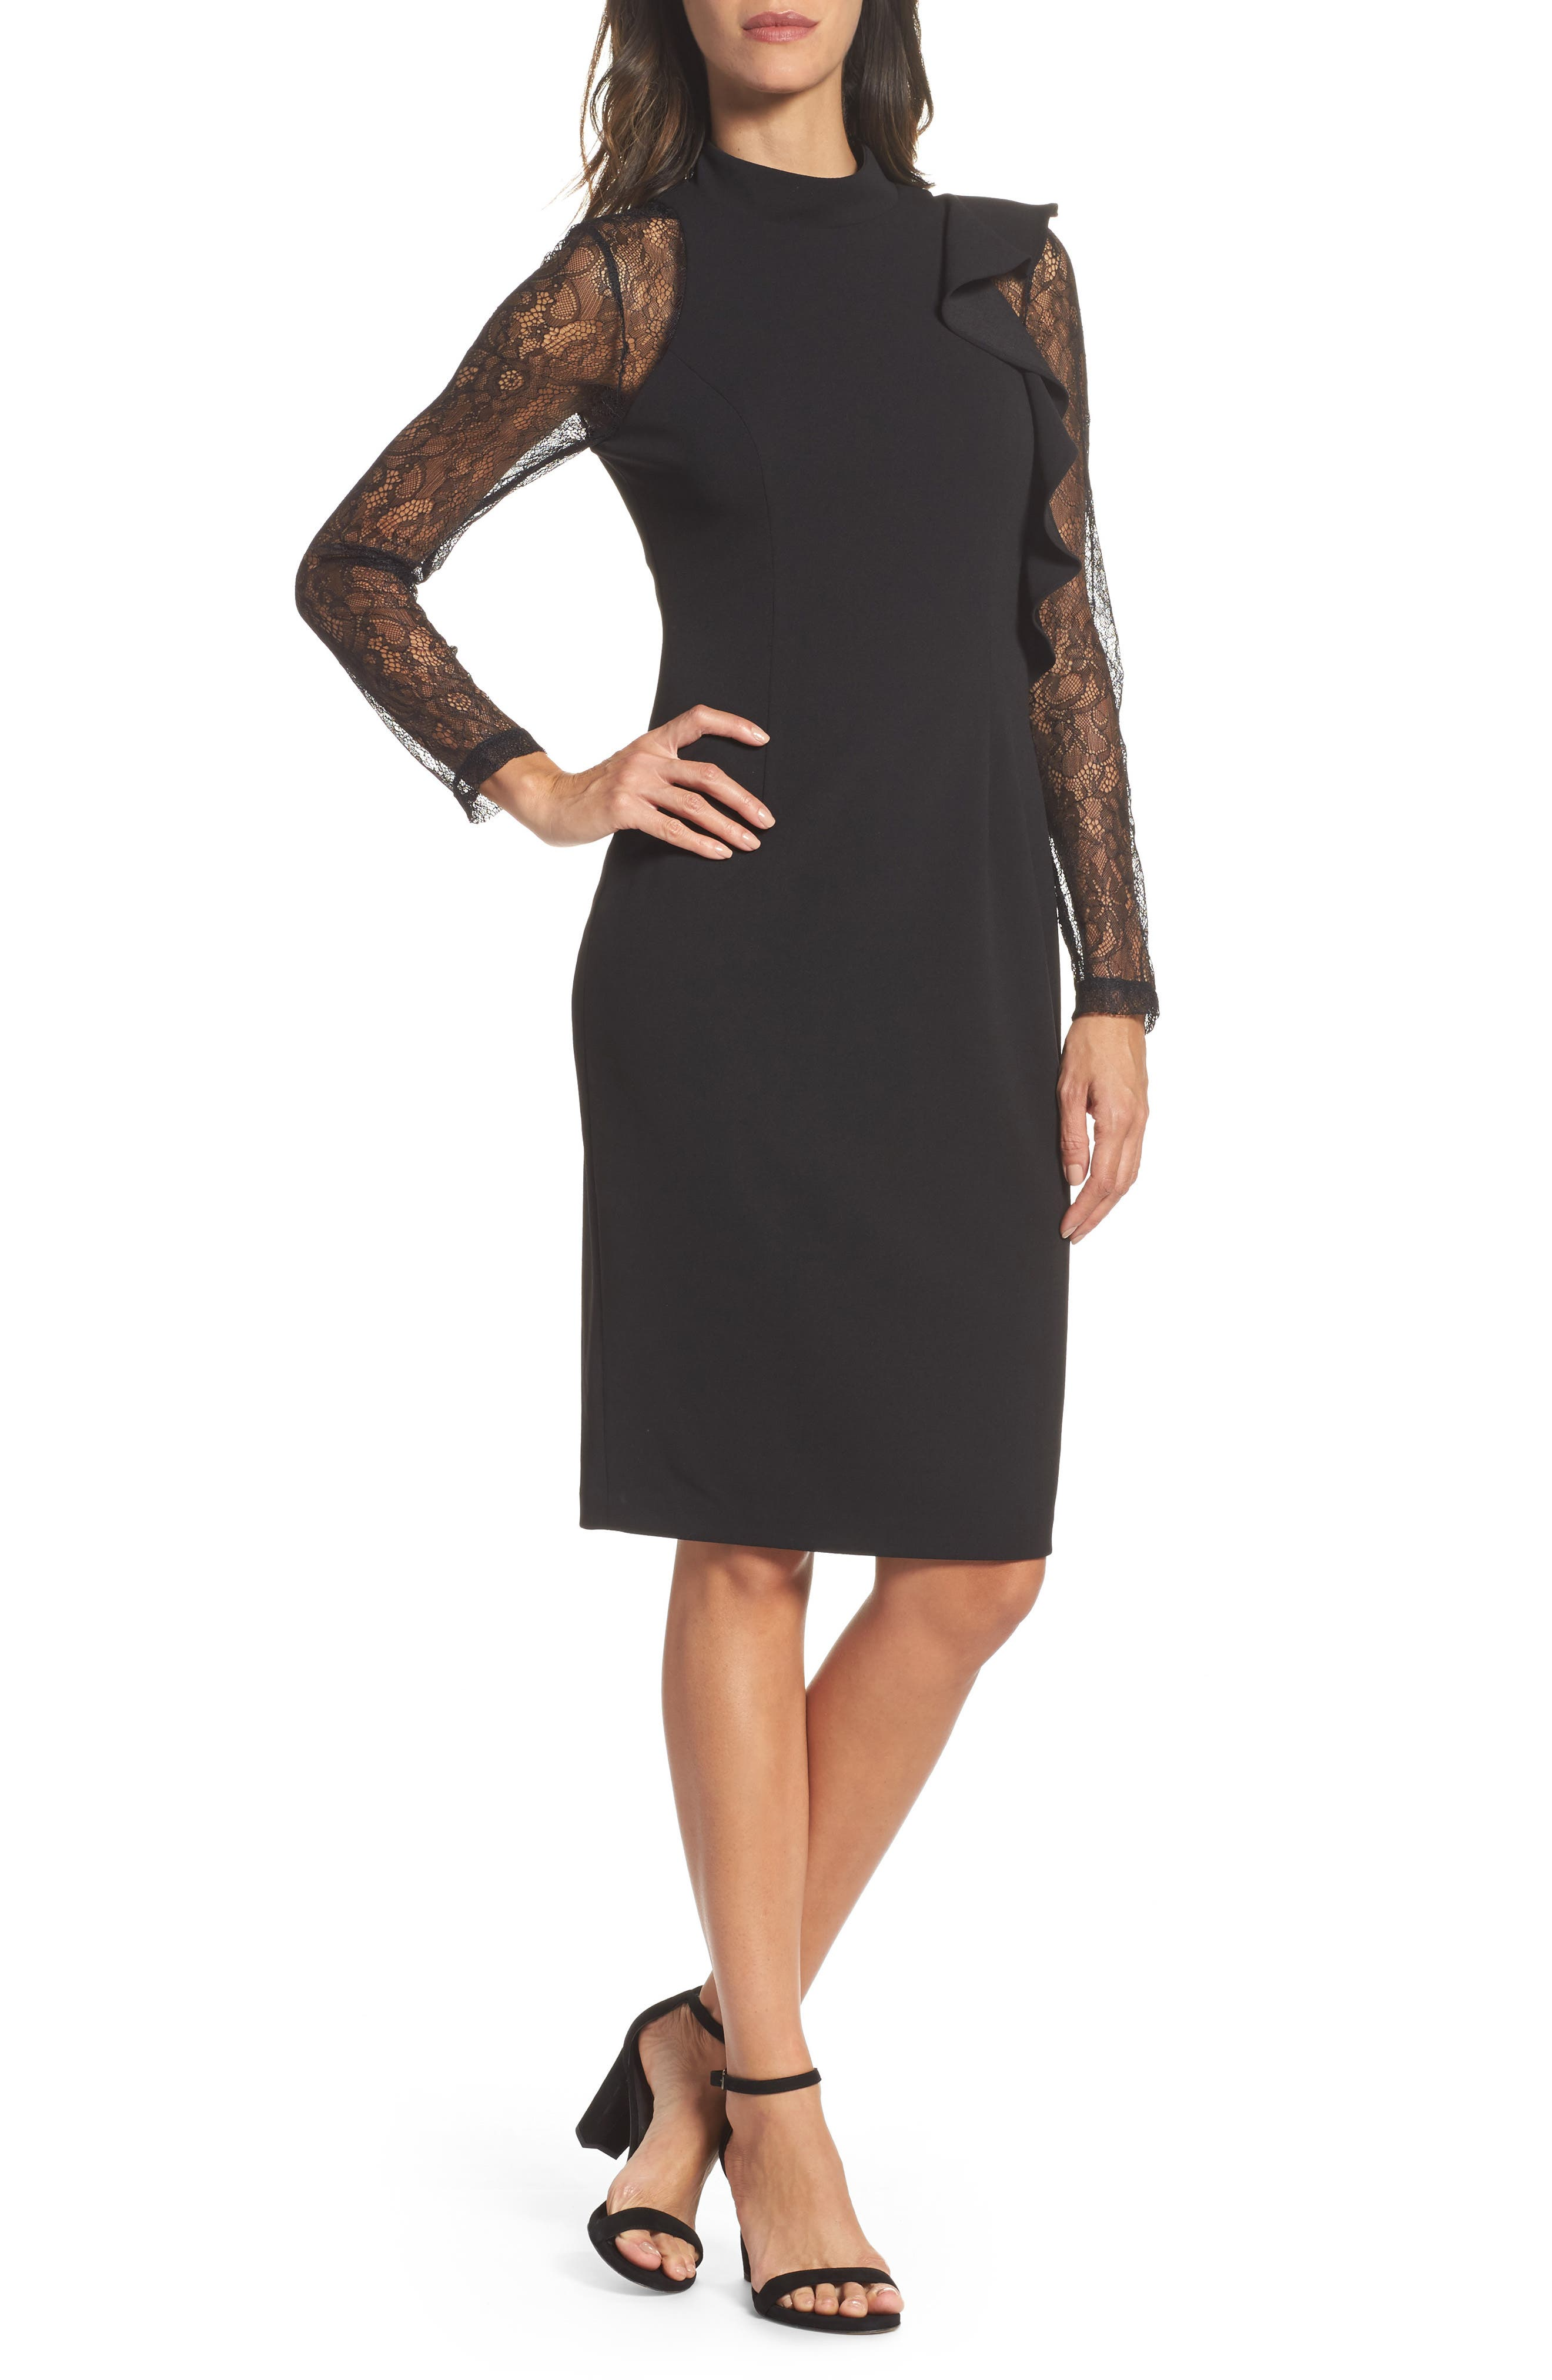 Adrianna Papell Ruffle Lace Sheath Dress